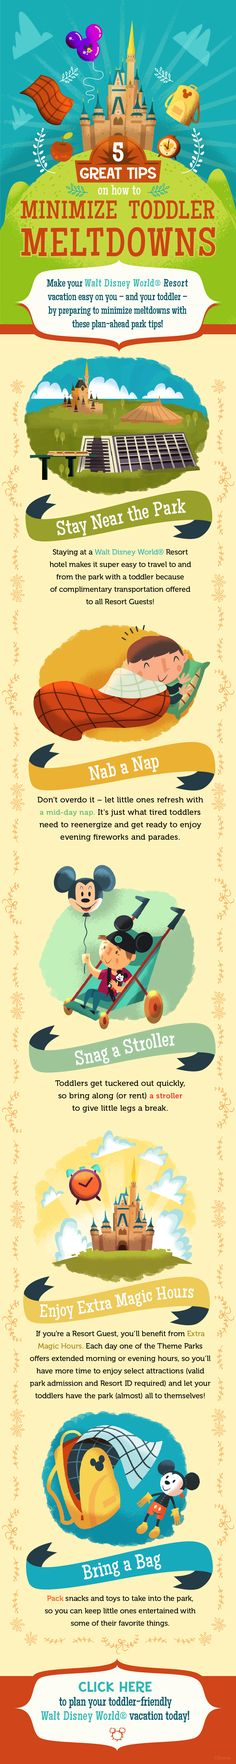 5 tips to minimize toddler meltdowns at Walt Disney World! #vacation #tricks